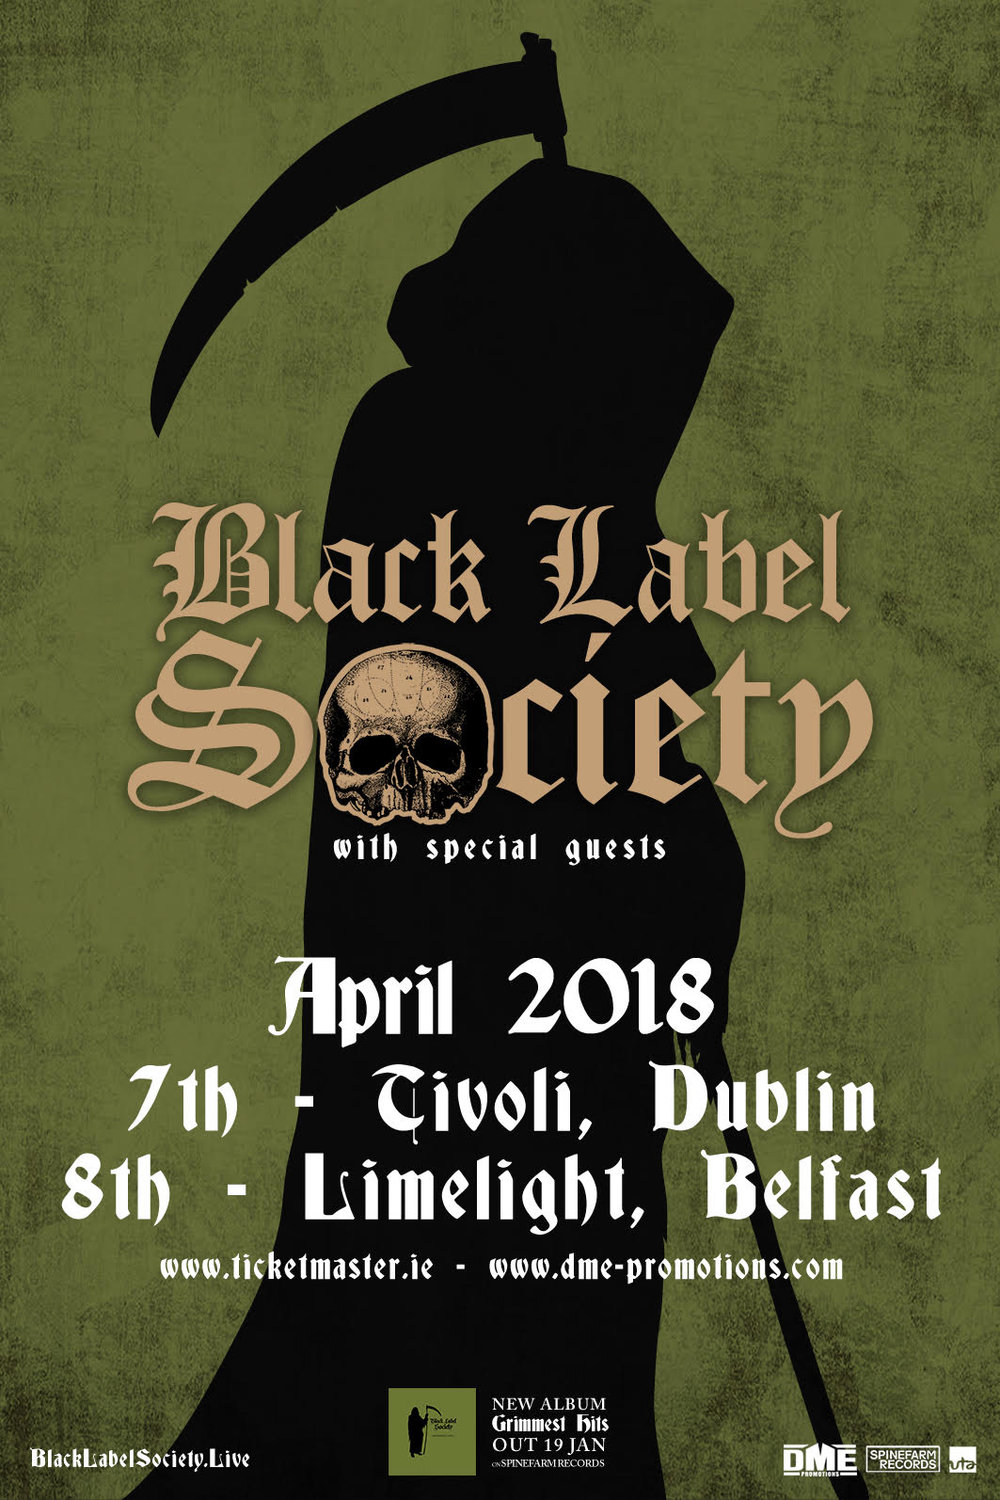 Black Label Society.jpg